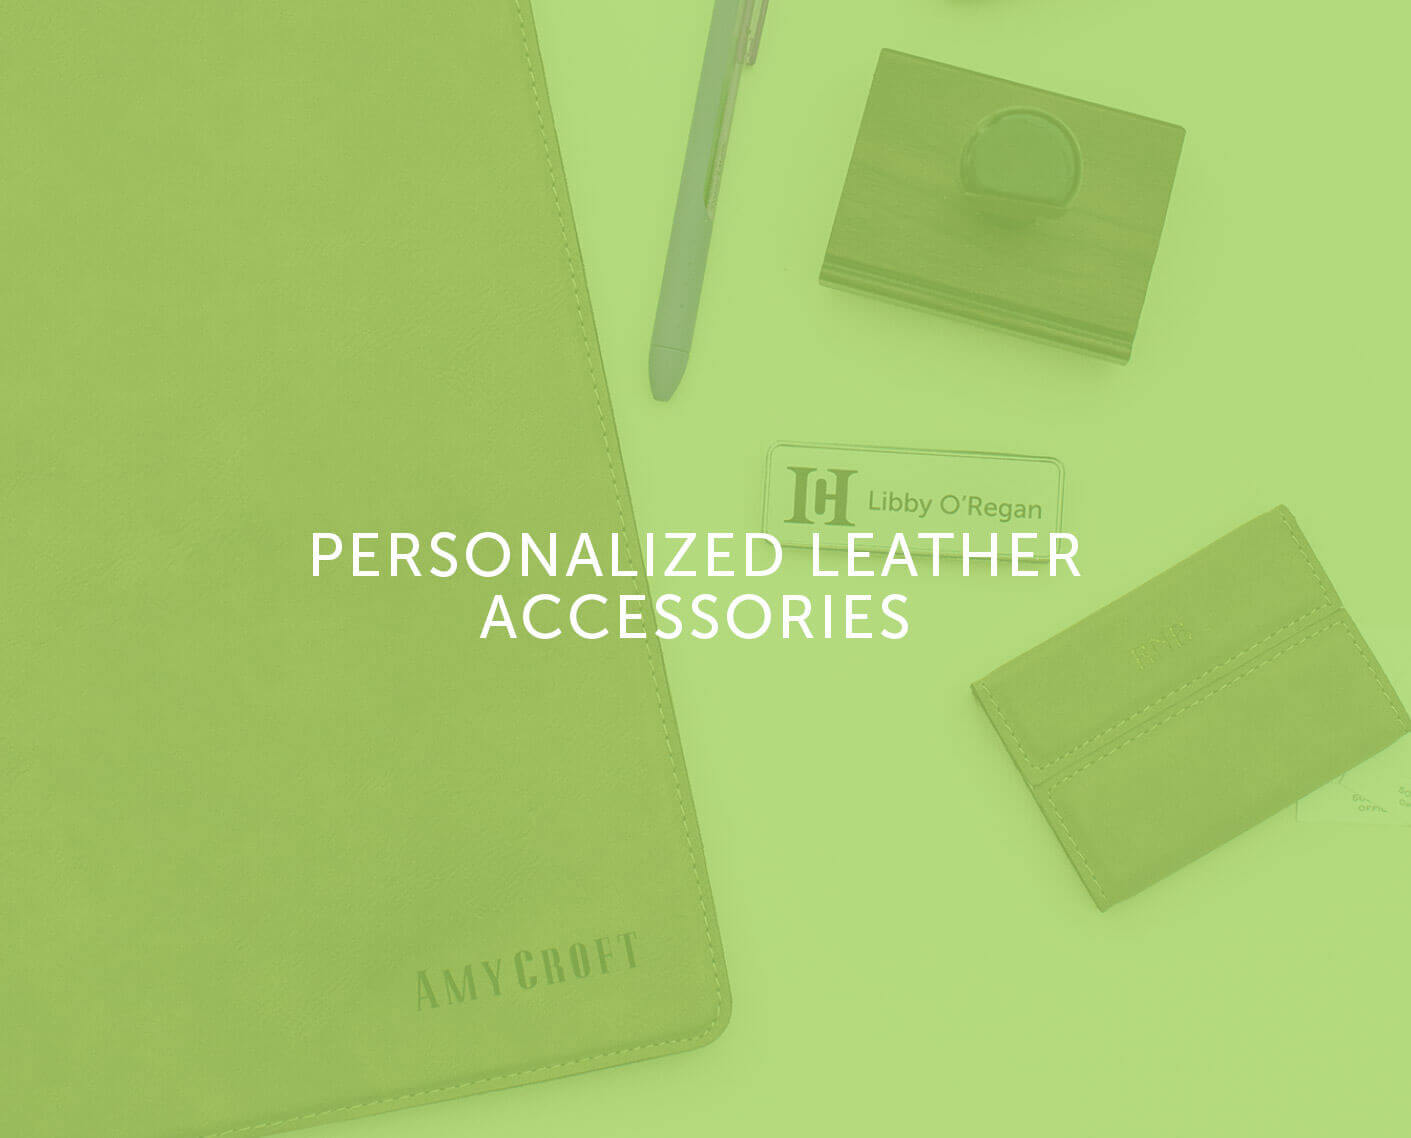 Personalized Leather Accessories